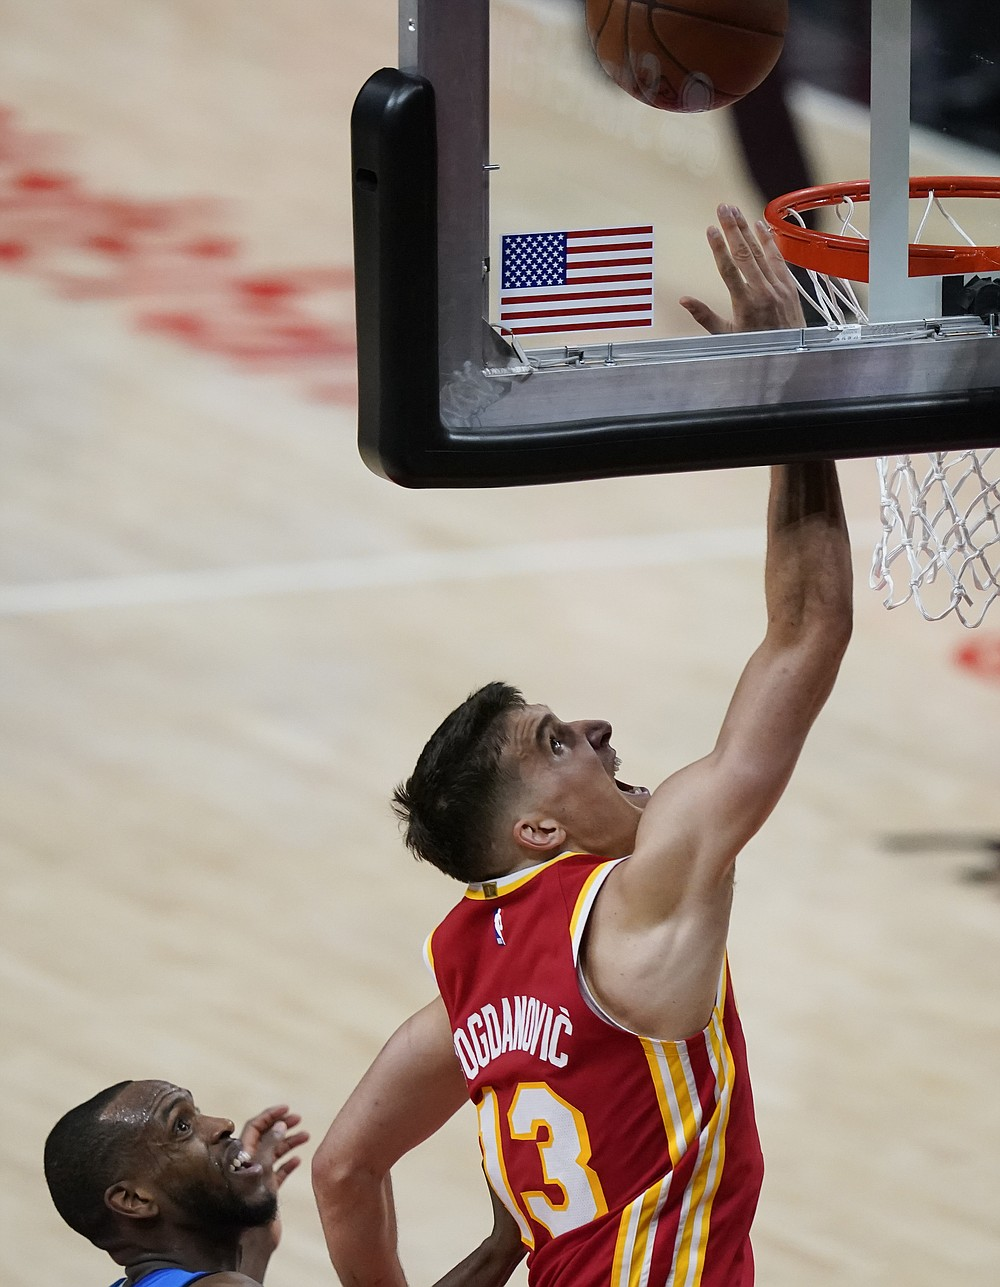 Atlanta Hawks' Bogdan Bogdanovic (13) shoots and scores during the first half of Game 3 of the NBA Eastern Conference basketball finals against Milwaukee Bucks Sunday, June 27, 2021, in Atlanta. (AP Photo/Brynn Anderson)